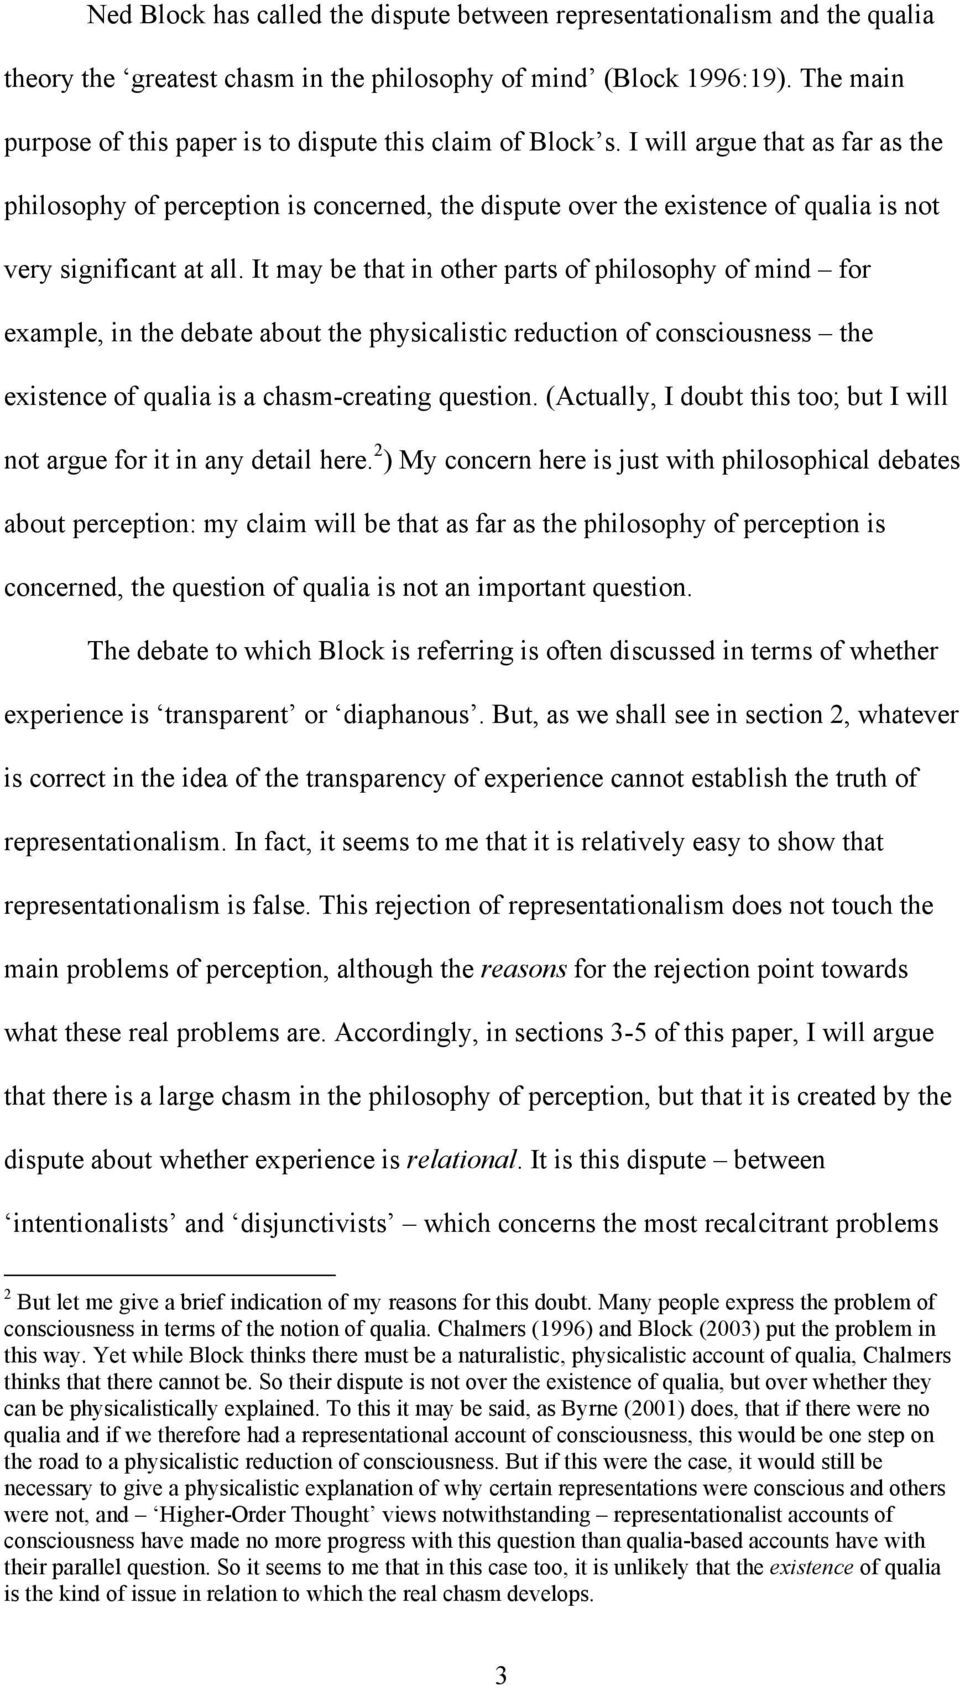 I will argue that as far as the philosophy of perception is concerned, the dispute over the existence of qualia is not very significant at all.